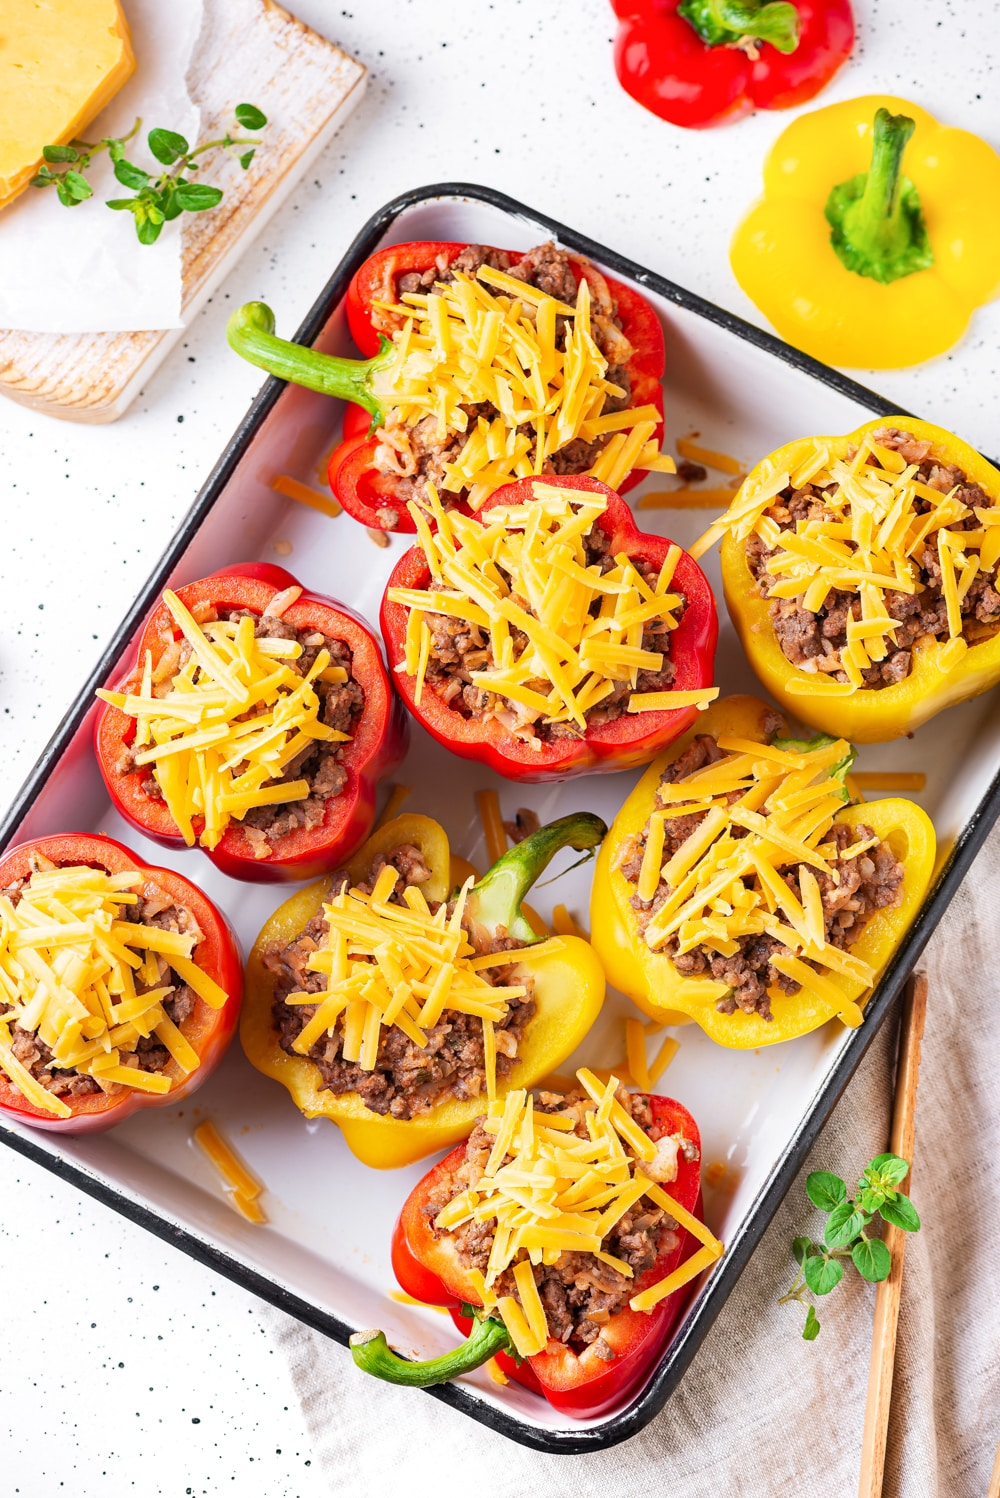 8 bell peppers halves stuffed with ground beef and topped with unmelted cheddar cheese on a baking sheet.